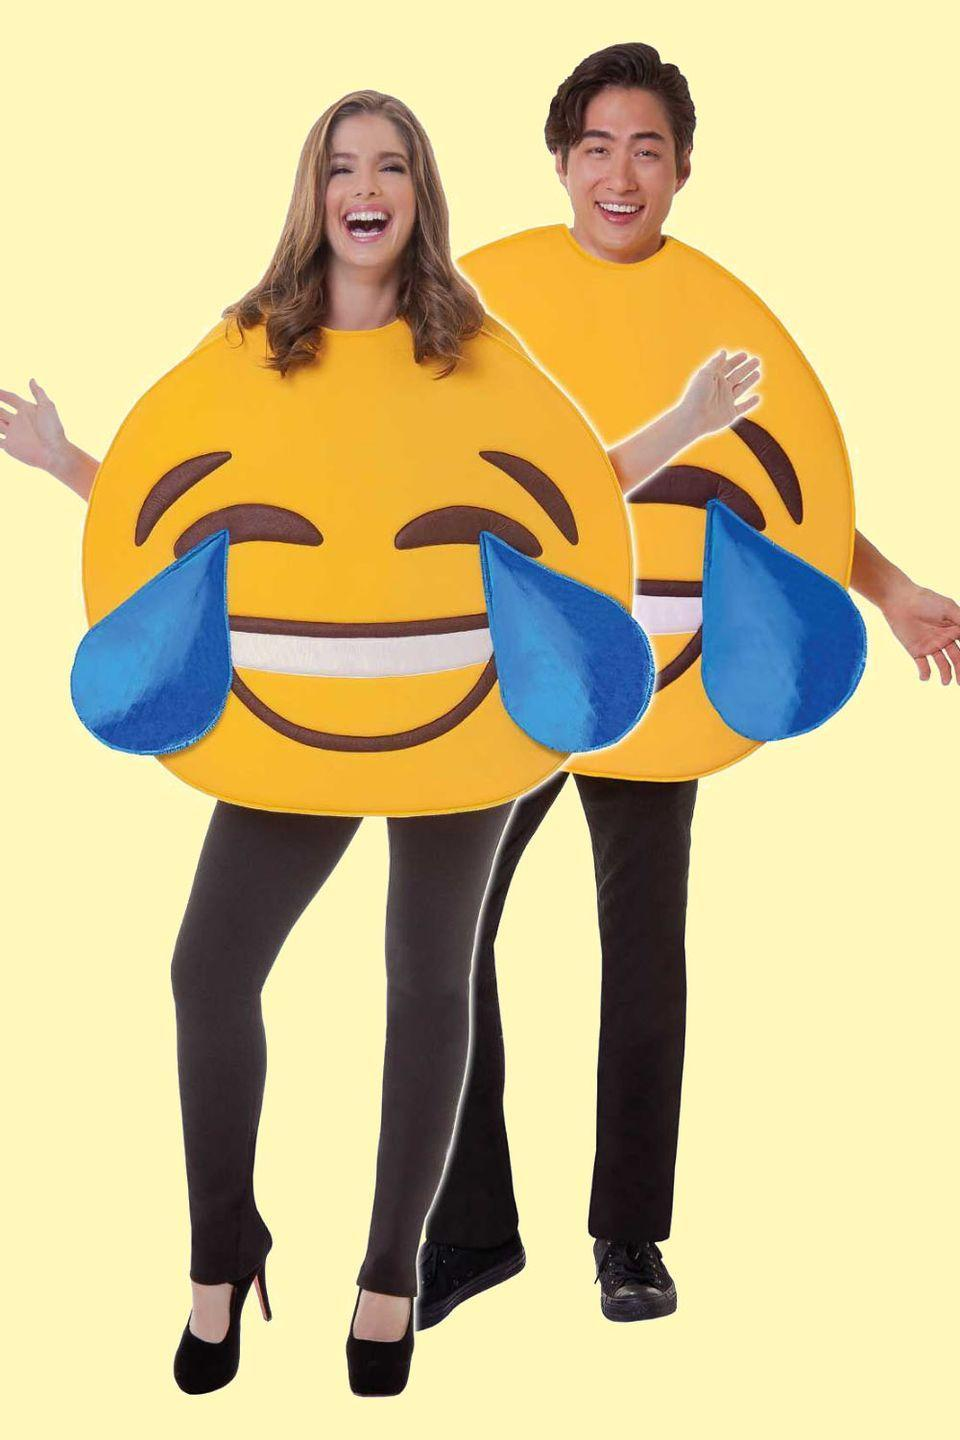 """<p>You text each other emojis all day long. With this costume, you can both be a """"Face With Tears of Joy"""" a.k.a. your most used emoji.</p><p> <a class=""""link rapid-noclick-resp"""" href=""""https://go.redirectingat.com?id=74968X1596630&url=https%3A%2F%2Fwww.spirithalloween.com%2Fproduct%2Flol-emoji-mask%2F151490.uts&sref=https%3A%2F%2Fwww.goodhousekeeping.com%2Fholidays%2Fhalloween-ideas%2Fg2625%2Fhalloween-costumes-for-couples%2F"""" rel=""""nofollow noopener"""" target=""""_blank"""" data-ylk=""""slk:SHOP EMOJI MASKS"""">SHOP EMOJI MASKS</a></p>"""